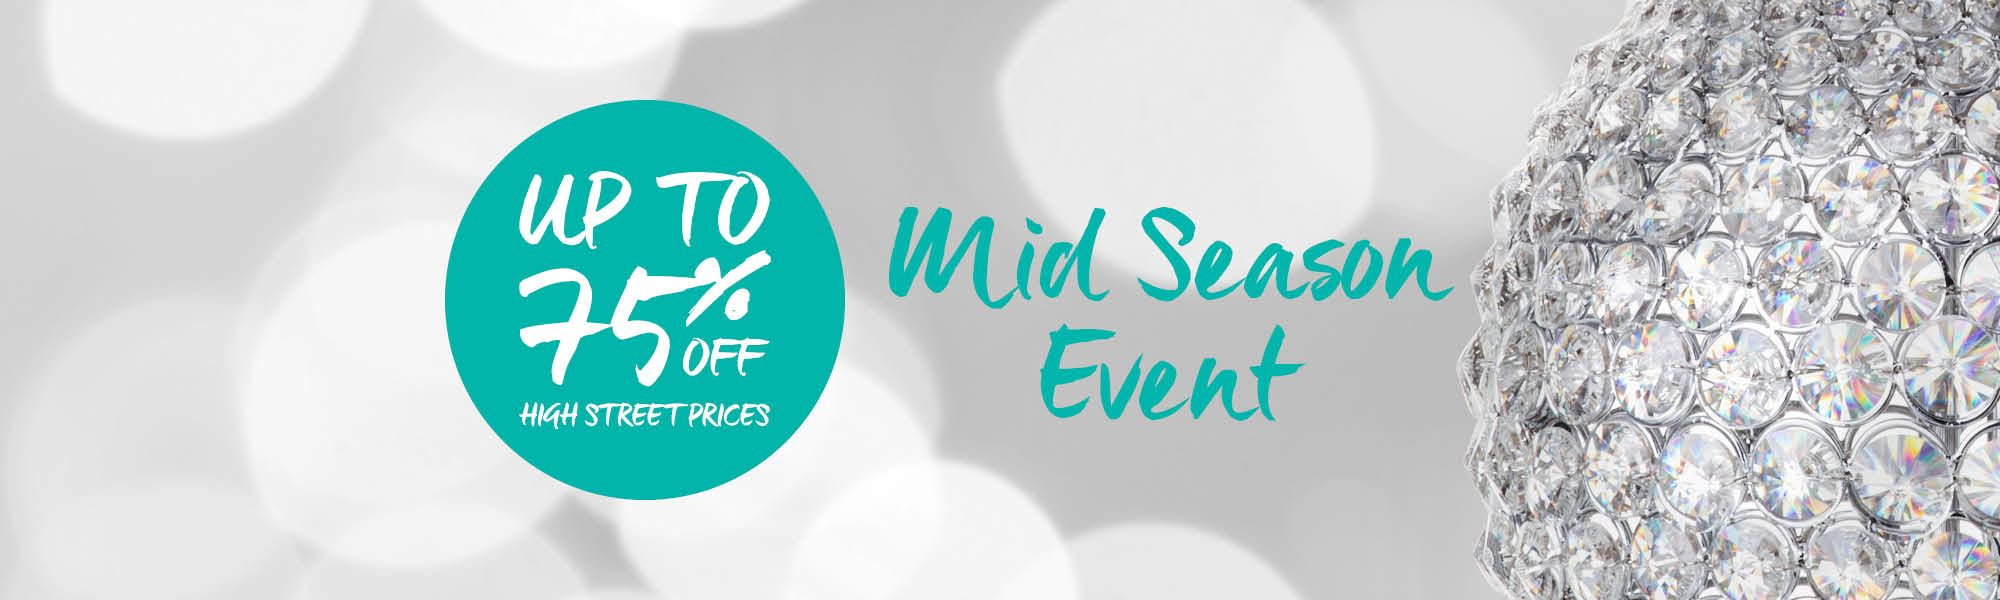 Mid Season Event - Save up to 75% off High Street Pirces